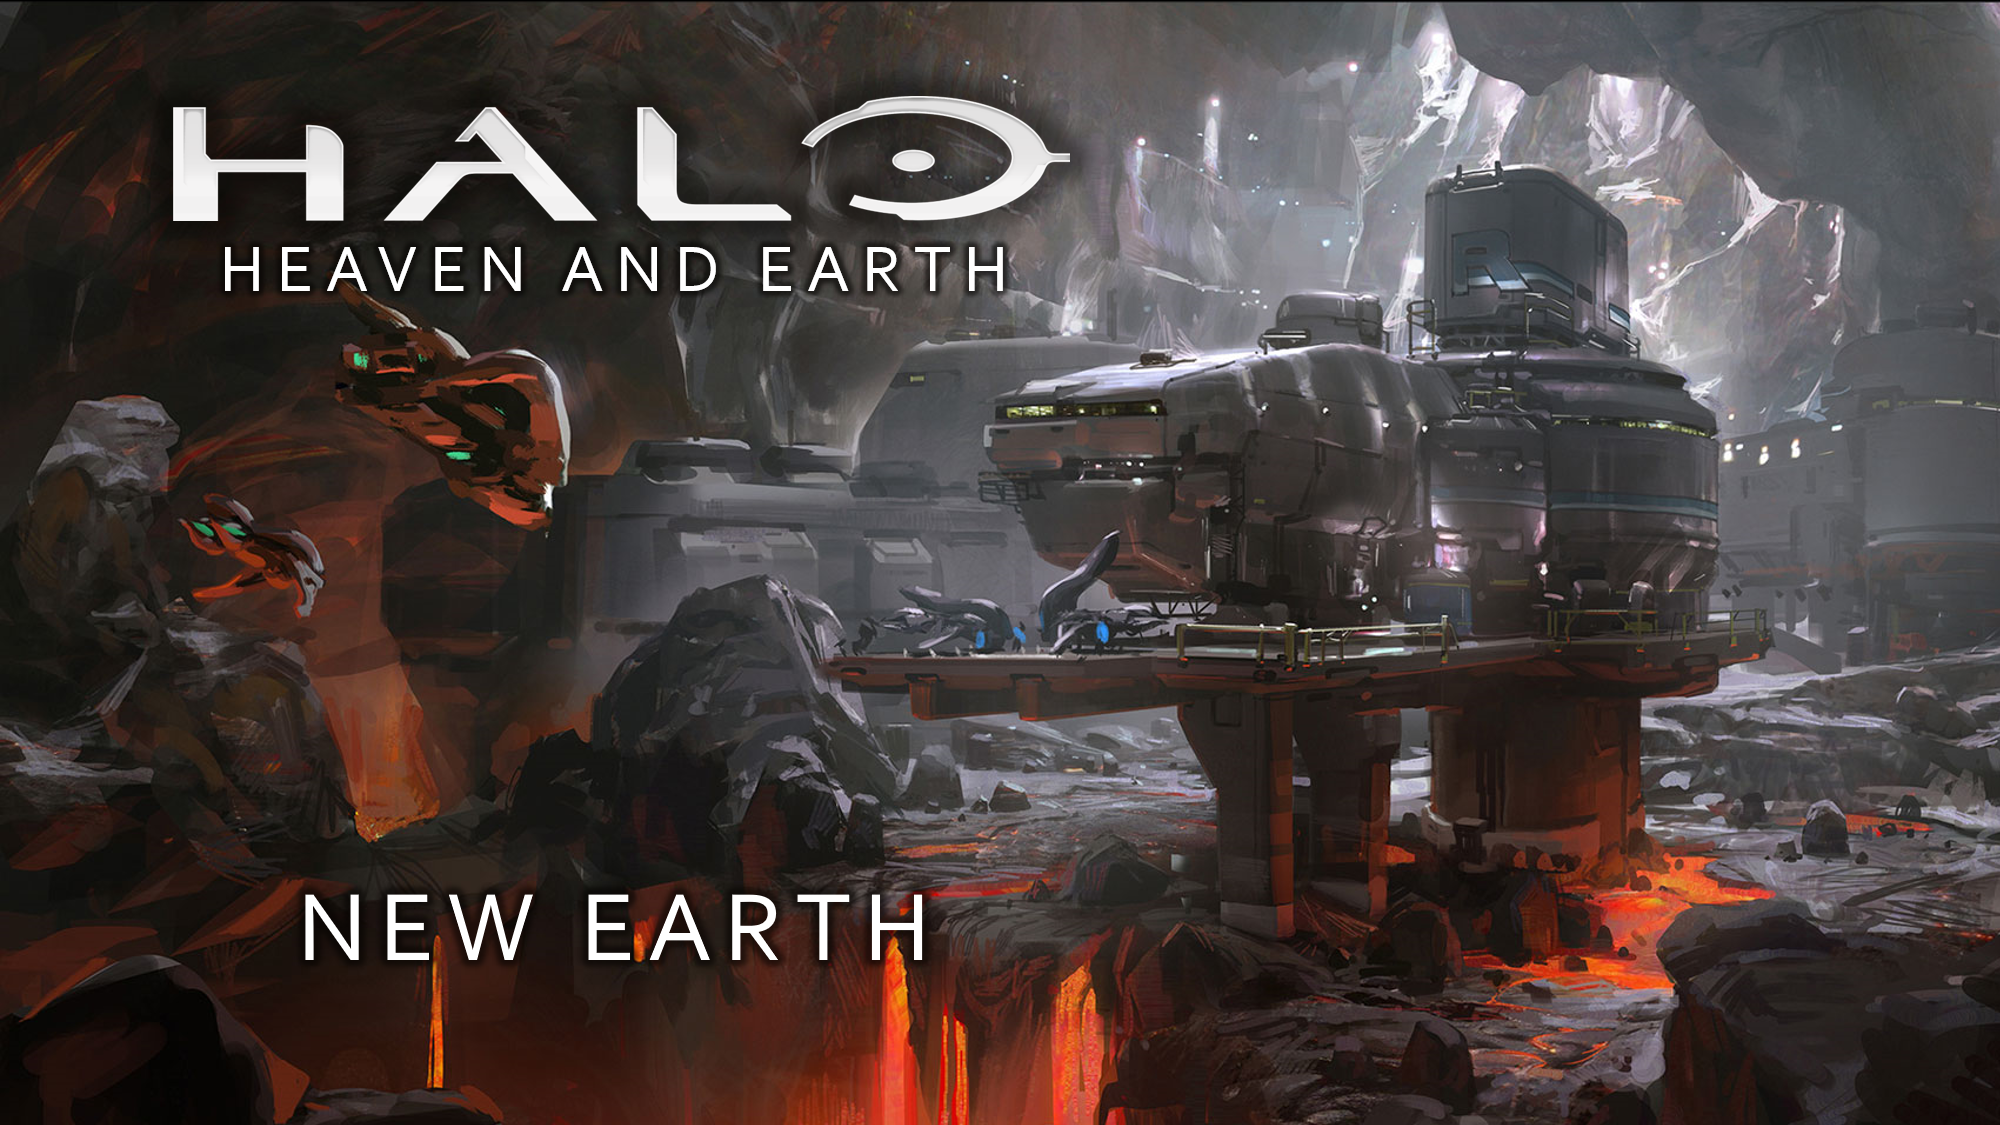 Halo: Heaven and Earth/Book Two: New Earth